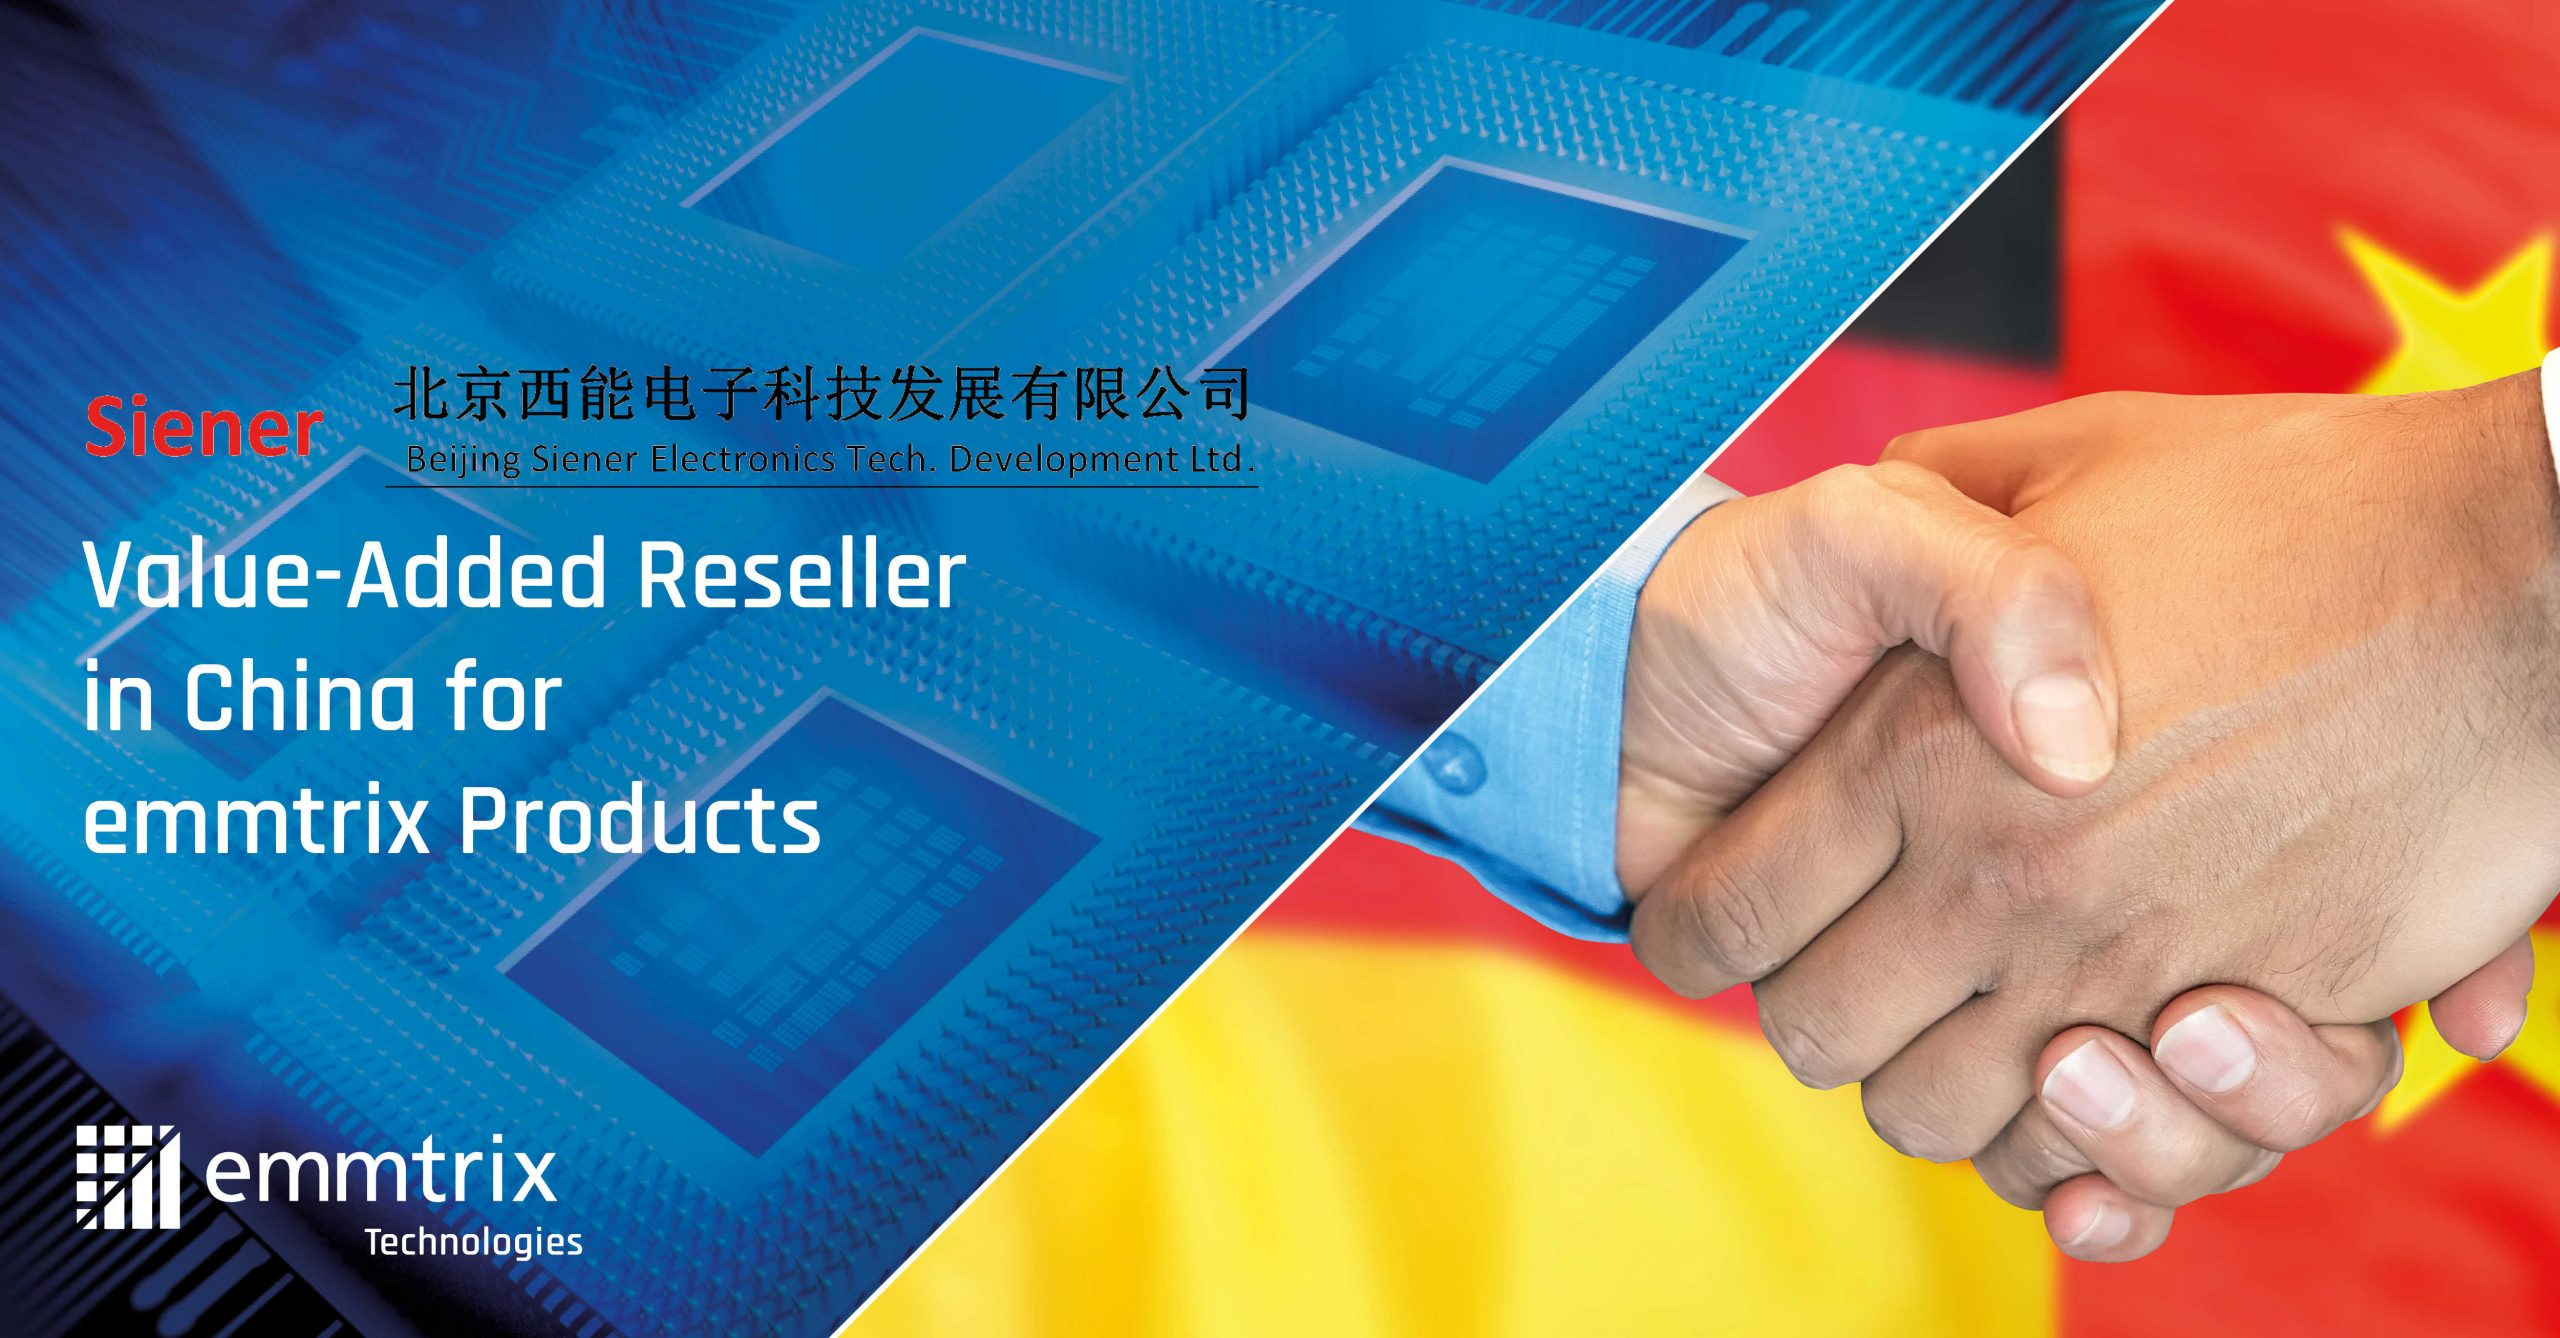 NeXtream - Value-Added Reseller in Japan for emmtrix Products